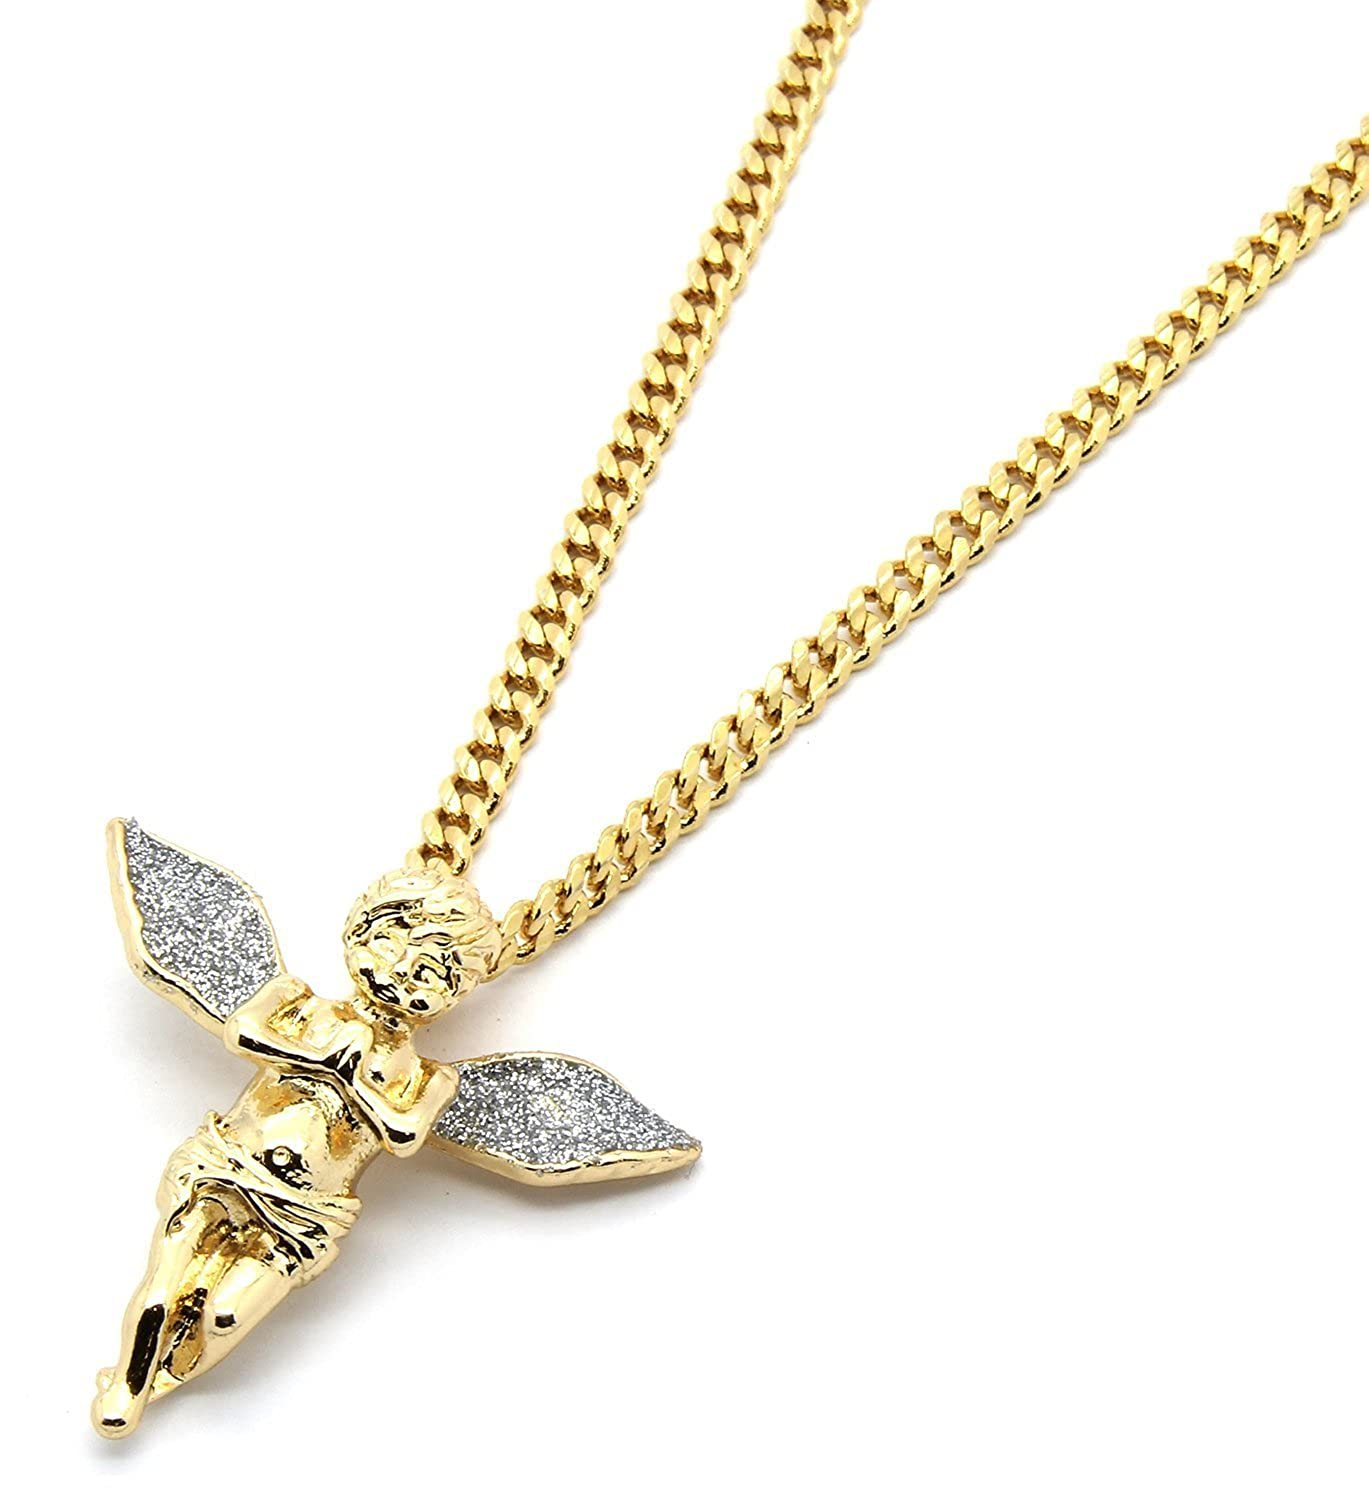 guardian angel necklace gold pendant tone clear crystal beach p